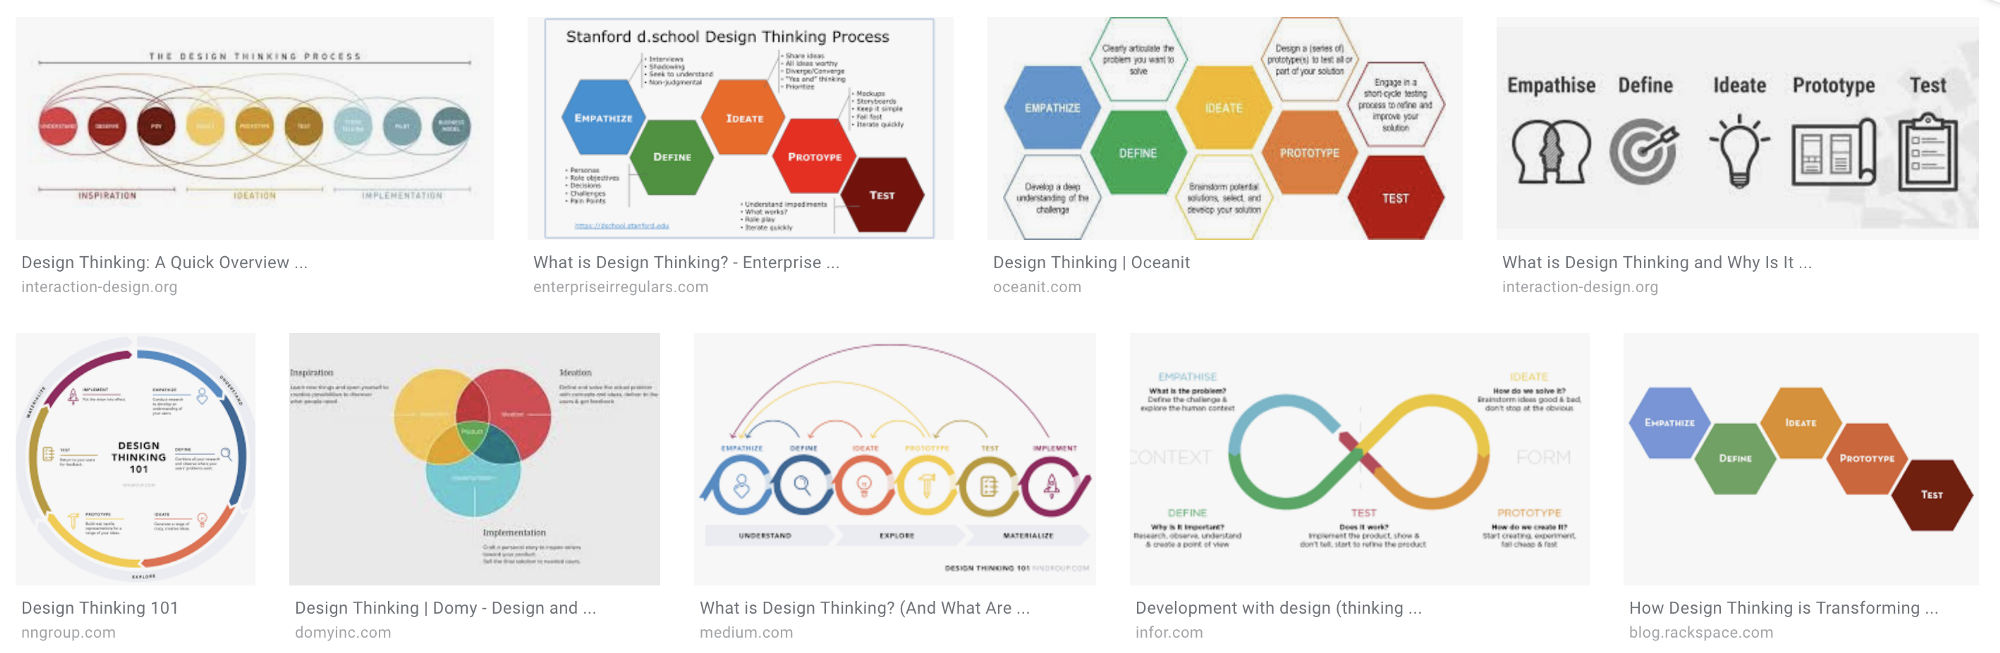 "Design Thinking can be expansive, divergent, tedious, empathic, and challenging. These images convey a linear process, not a dynamic one. Top Google Image results for ""Design Thinking"" on Nov 28th, 2018."